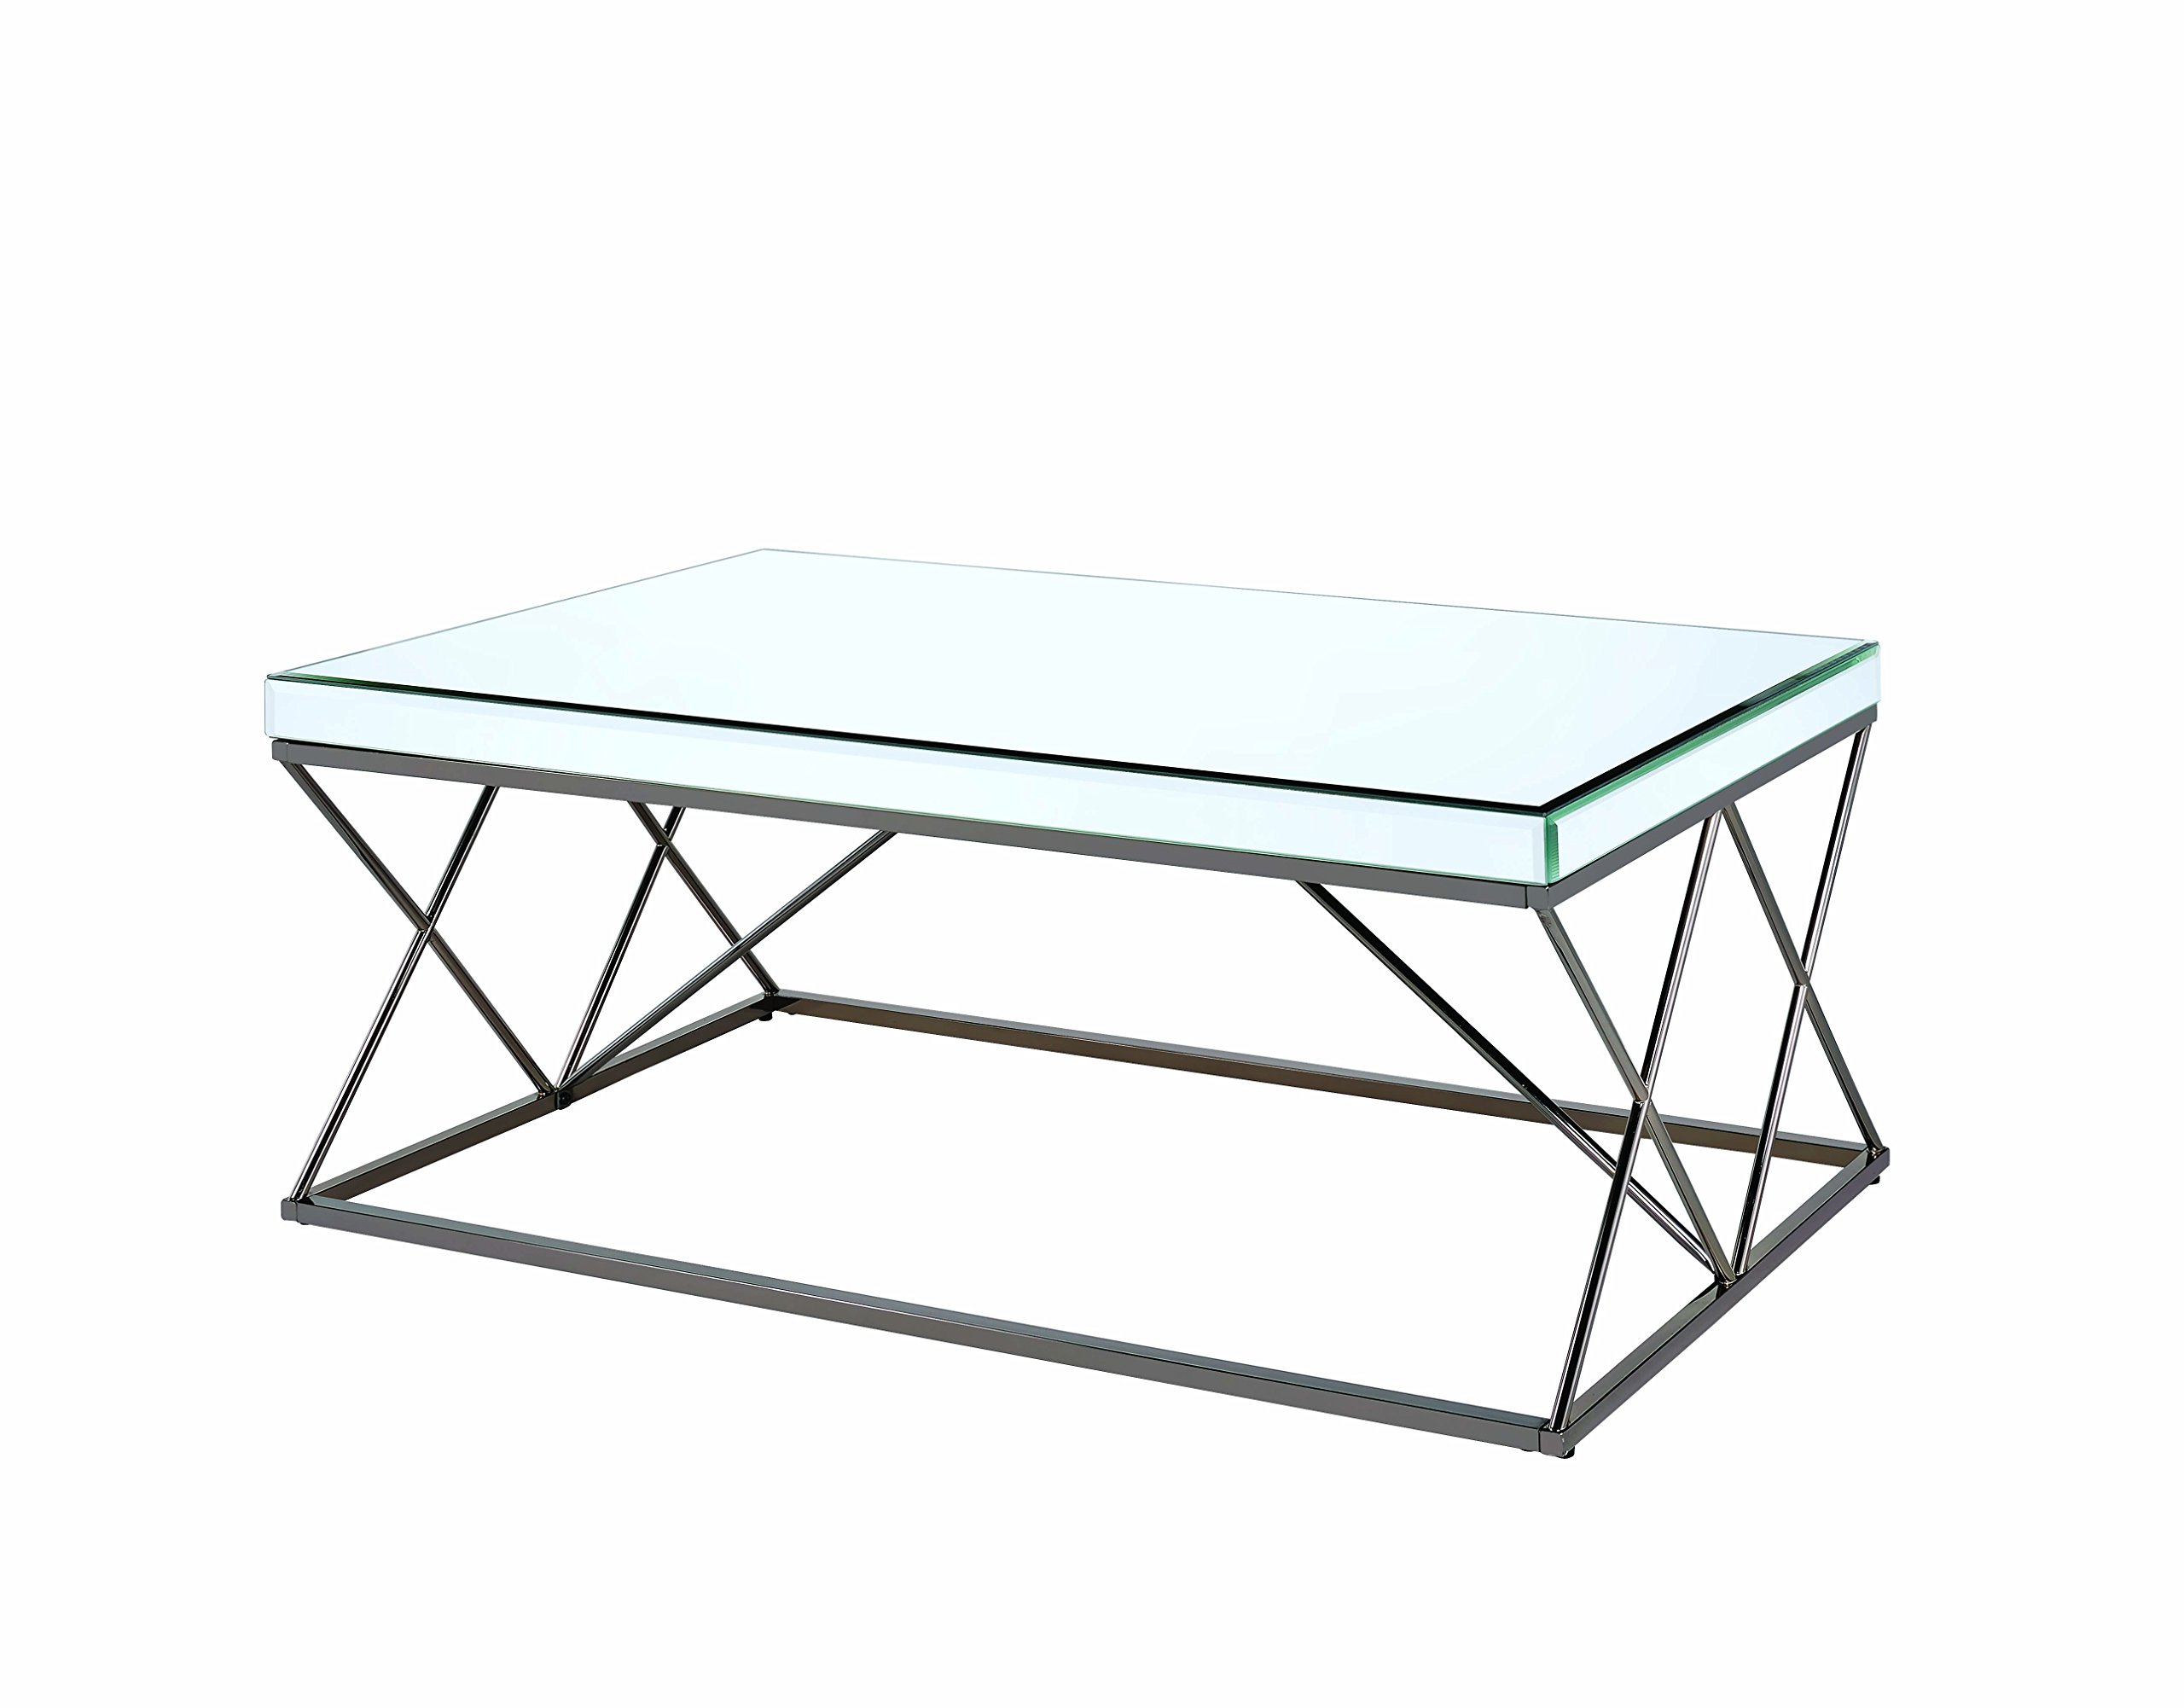 Coaster -CO Furniture Piece - Set includes: One (1) coffee table Materials: Metal, hollow board and mirror Finish Color: Black nickel and mirror - living-room-furniture, living-room, coffee-tables - 71ZHW13eHVL -